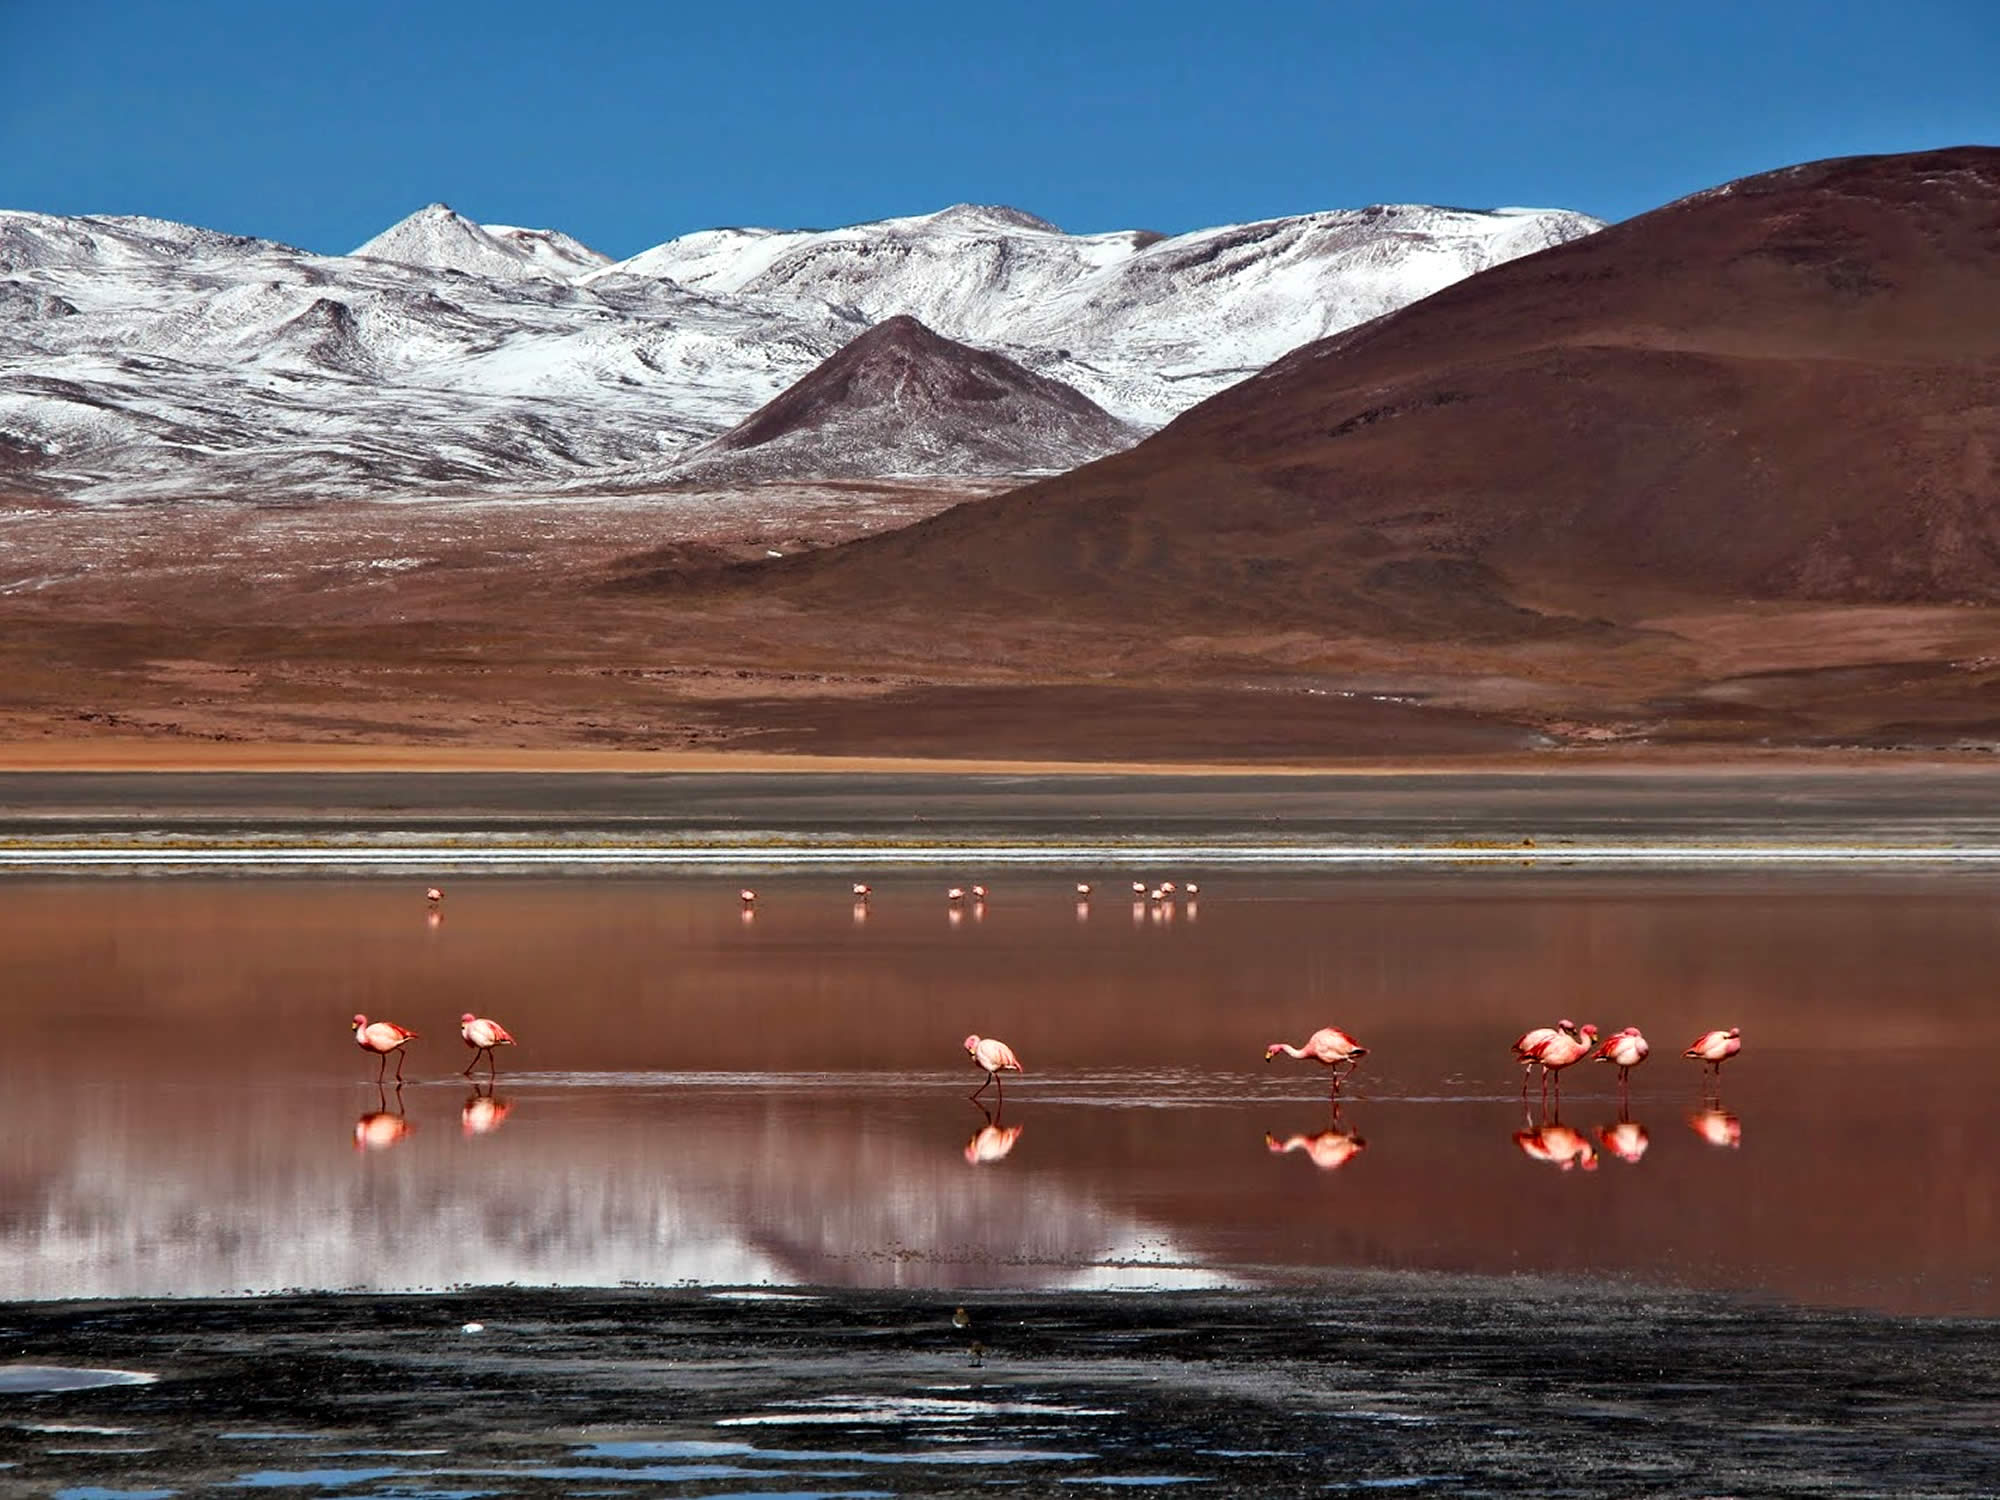 If you are lucky, you can take spectacular photos of the flamingos feeding in the Red Lagoon